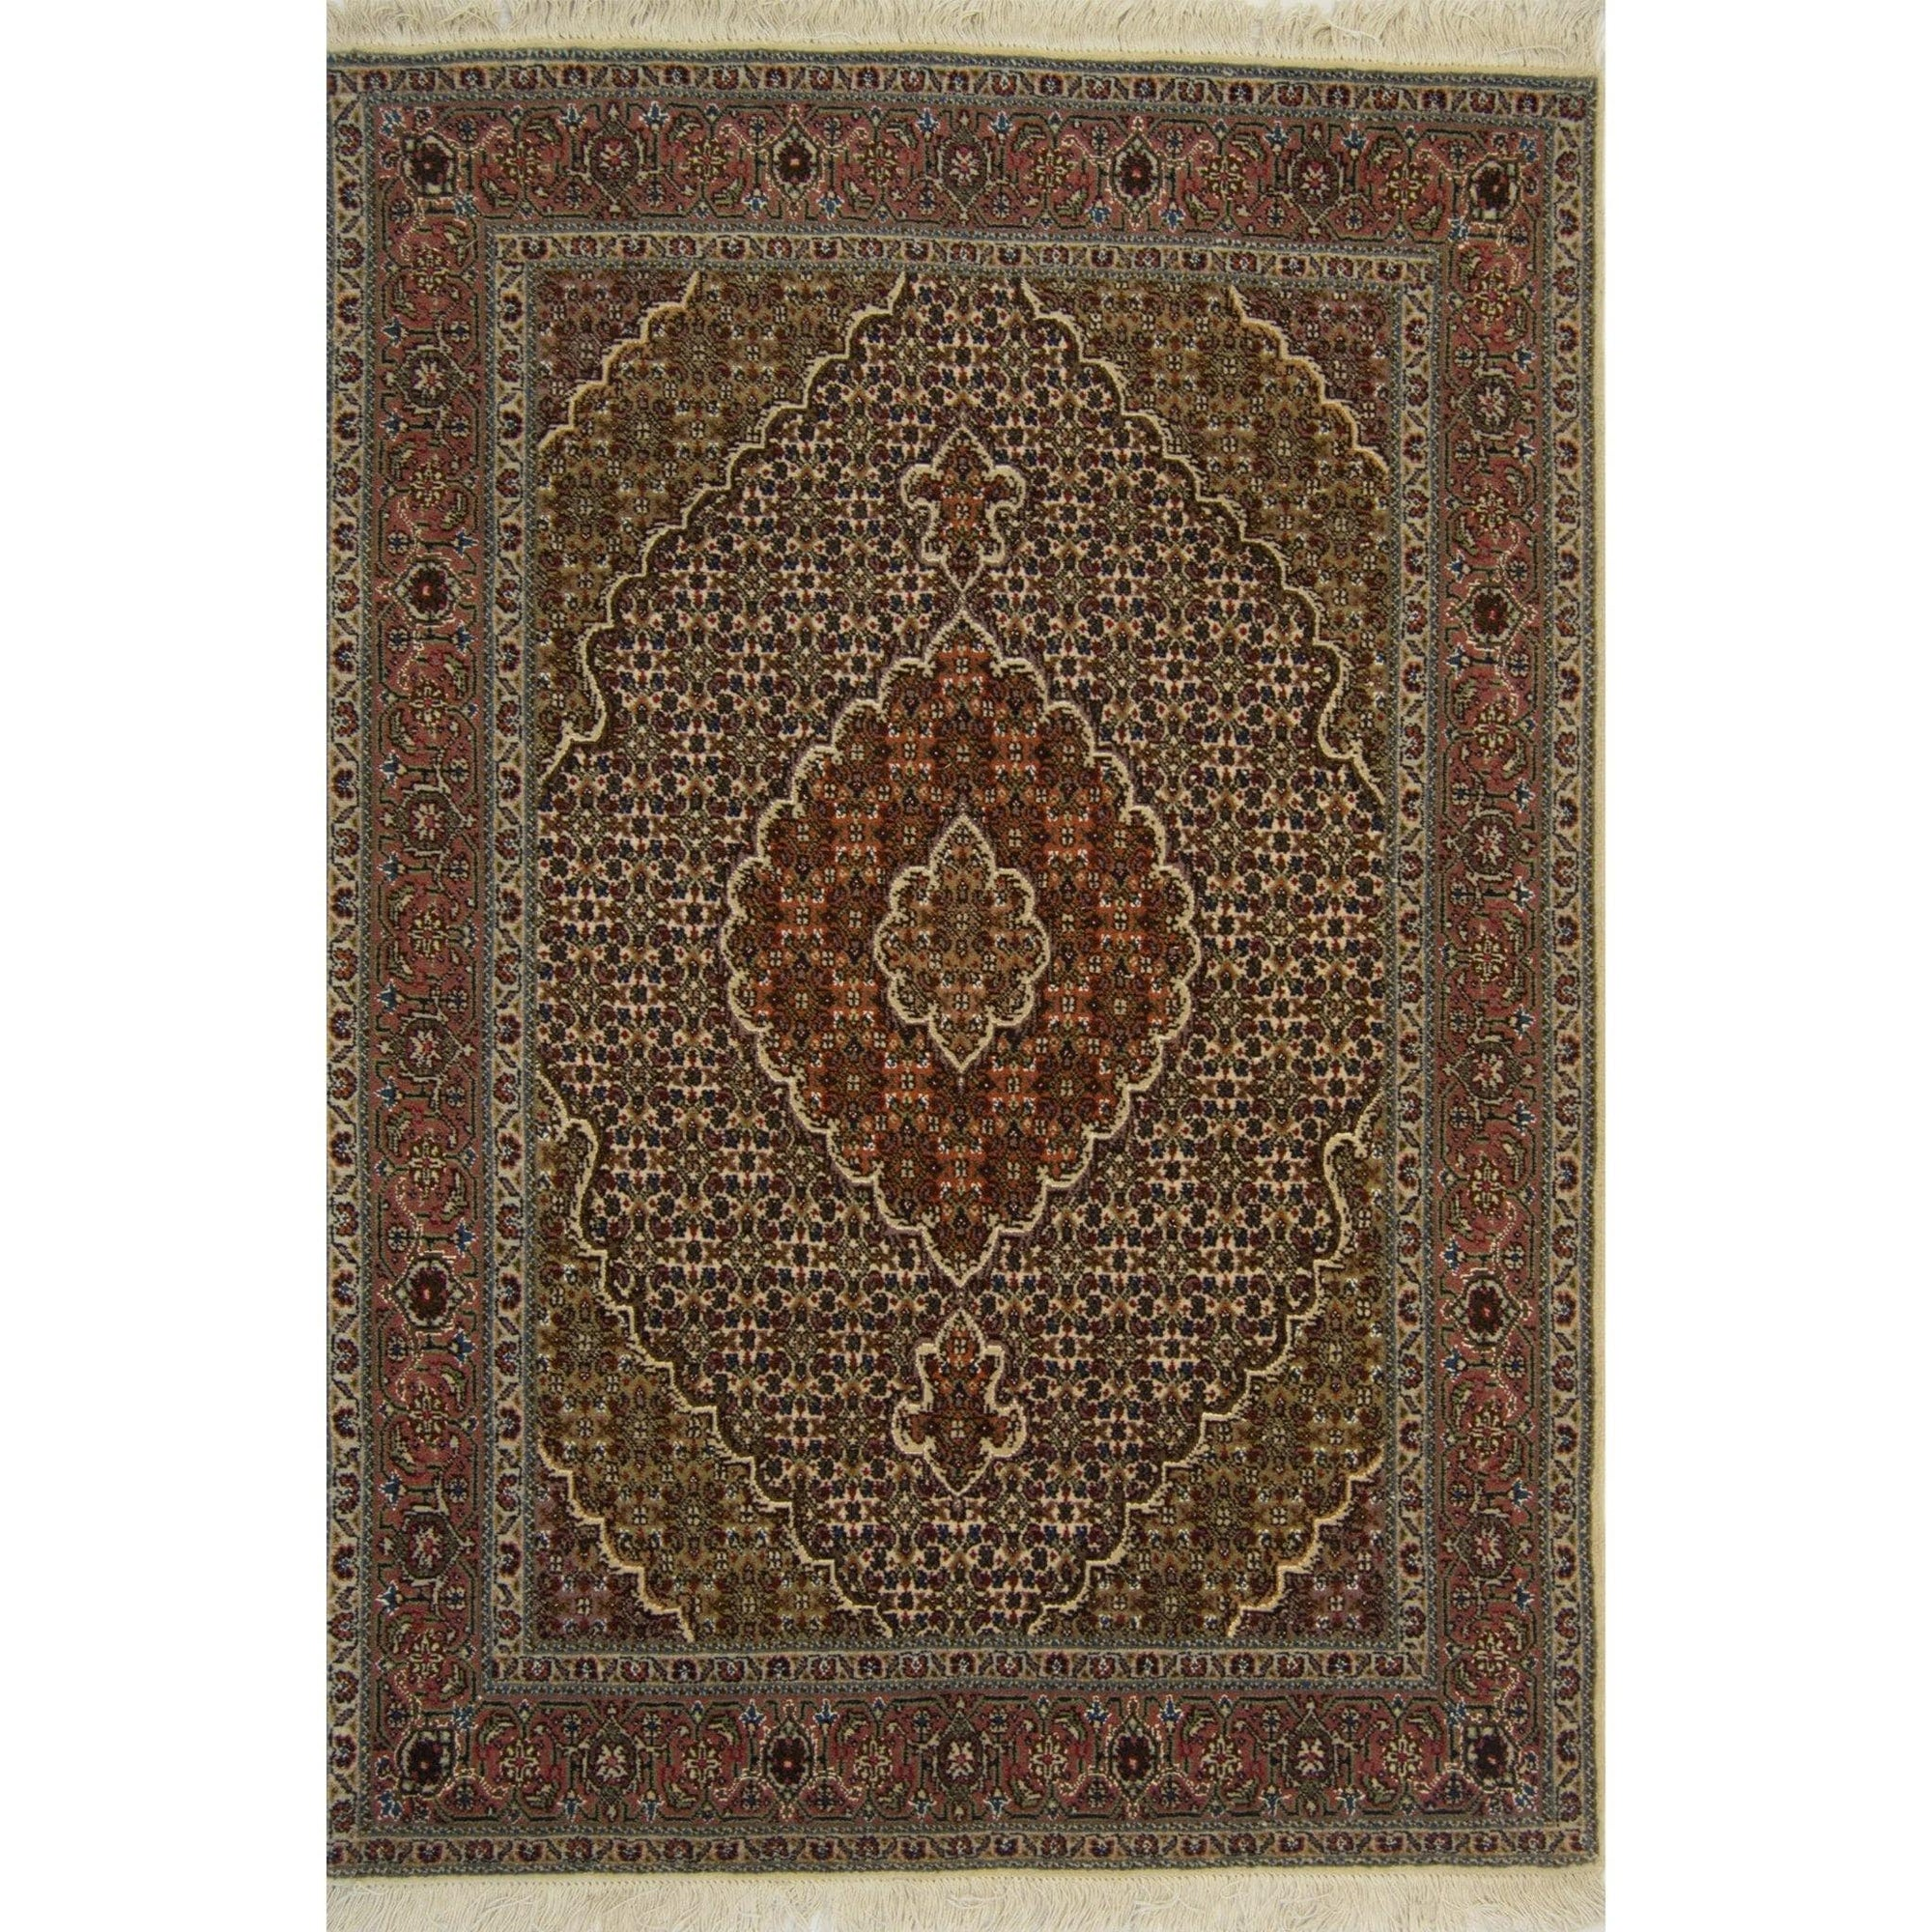 Fine Hand-knotted Wool and Silk Persian Tabriz - Mahi Rug 104cm x 150cm Persian-Rug | House-of-Haghi | NewMarket | Auckland | NZ | Handmade Persian Rugs | Hand Knotted Persian Rugs